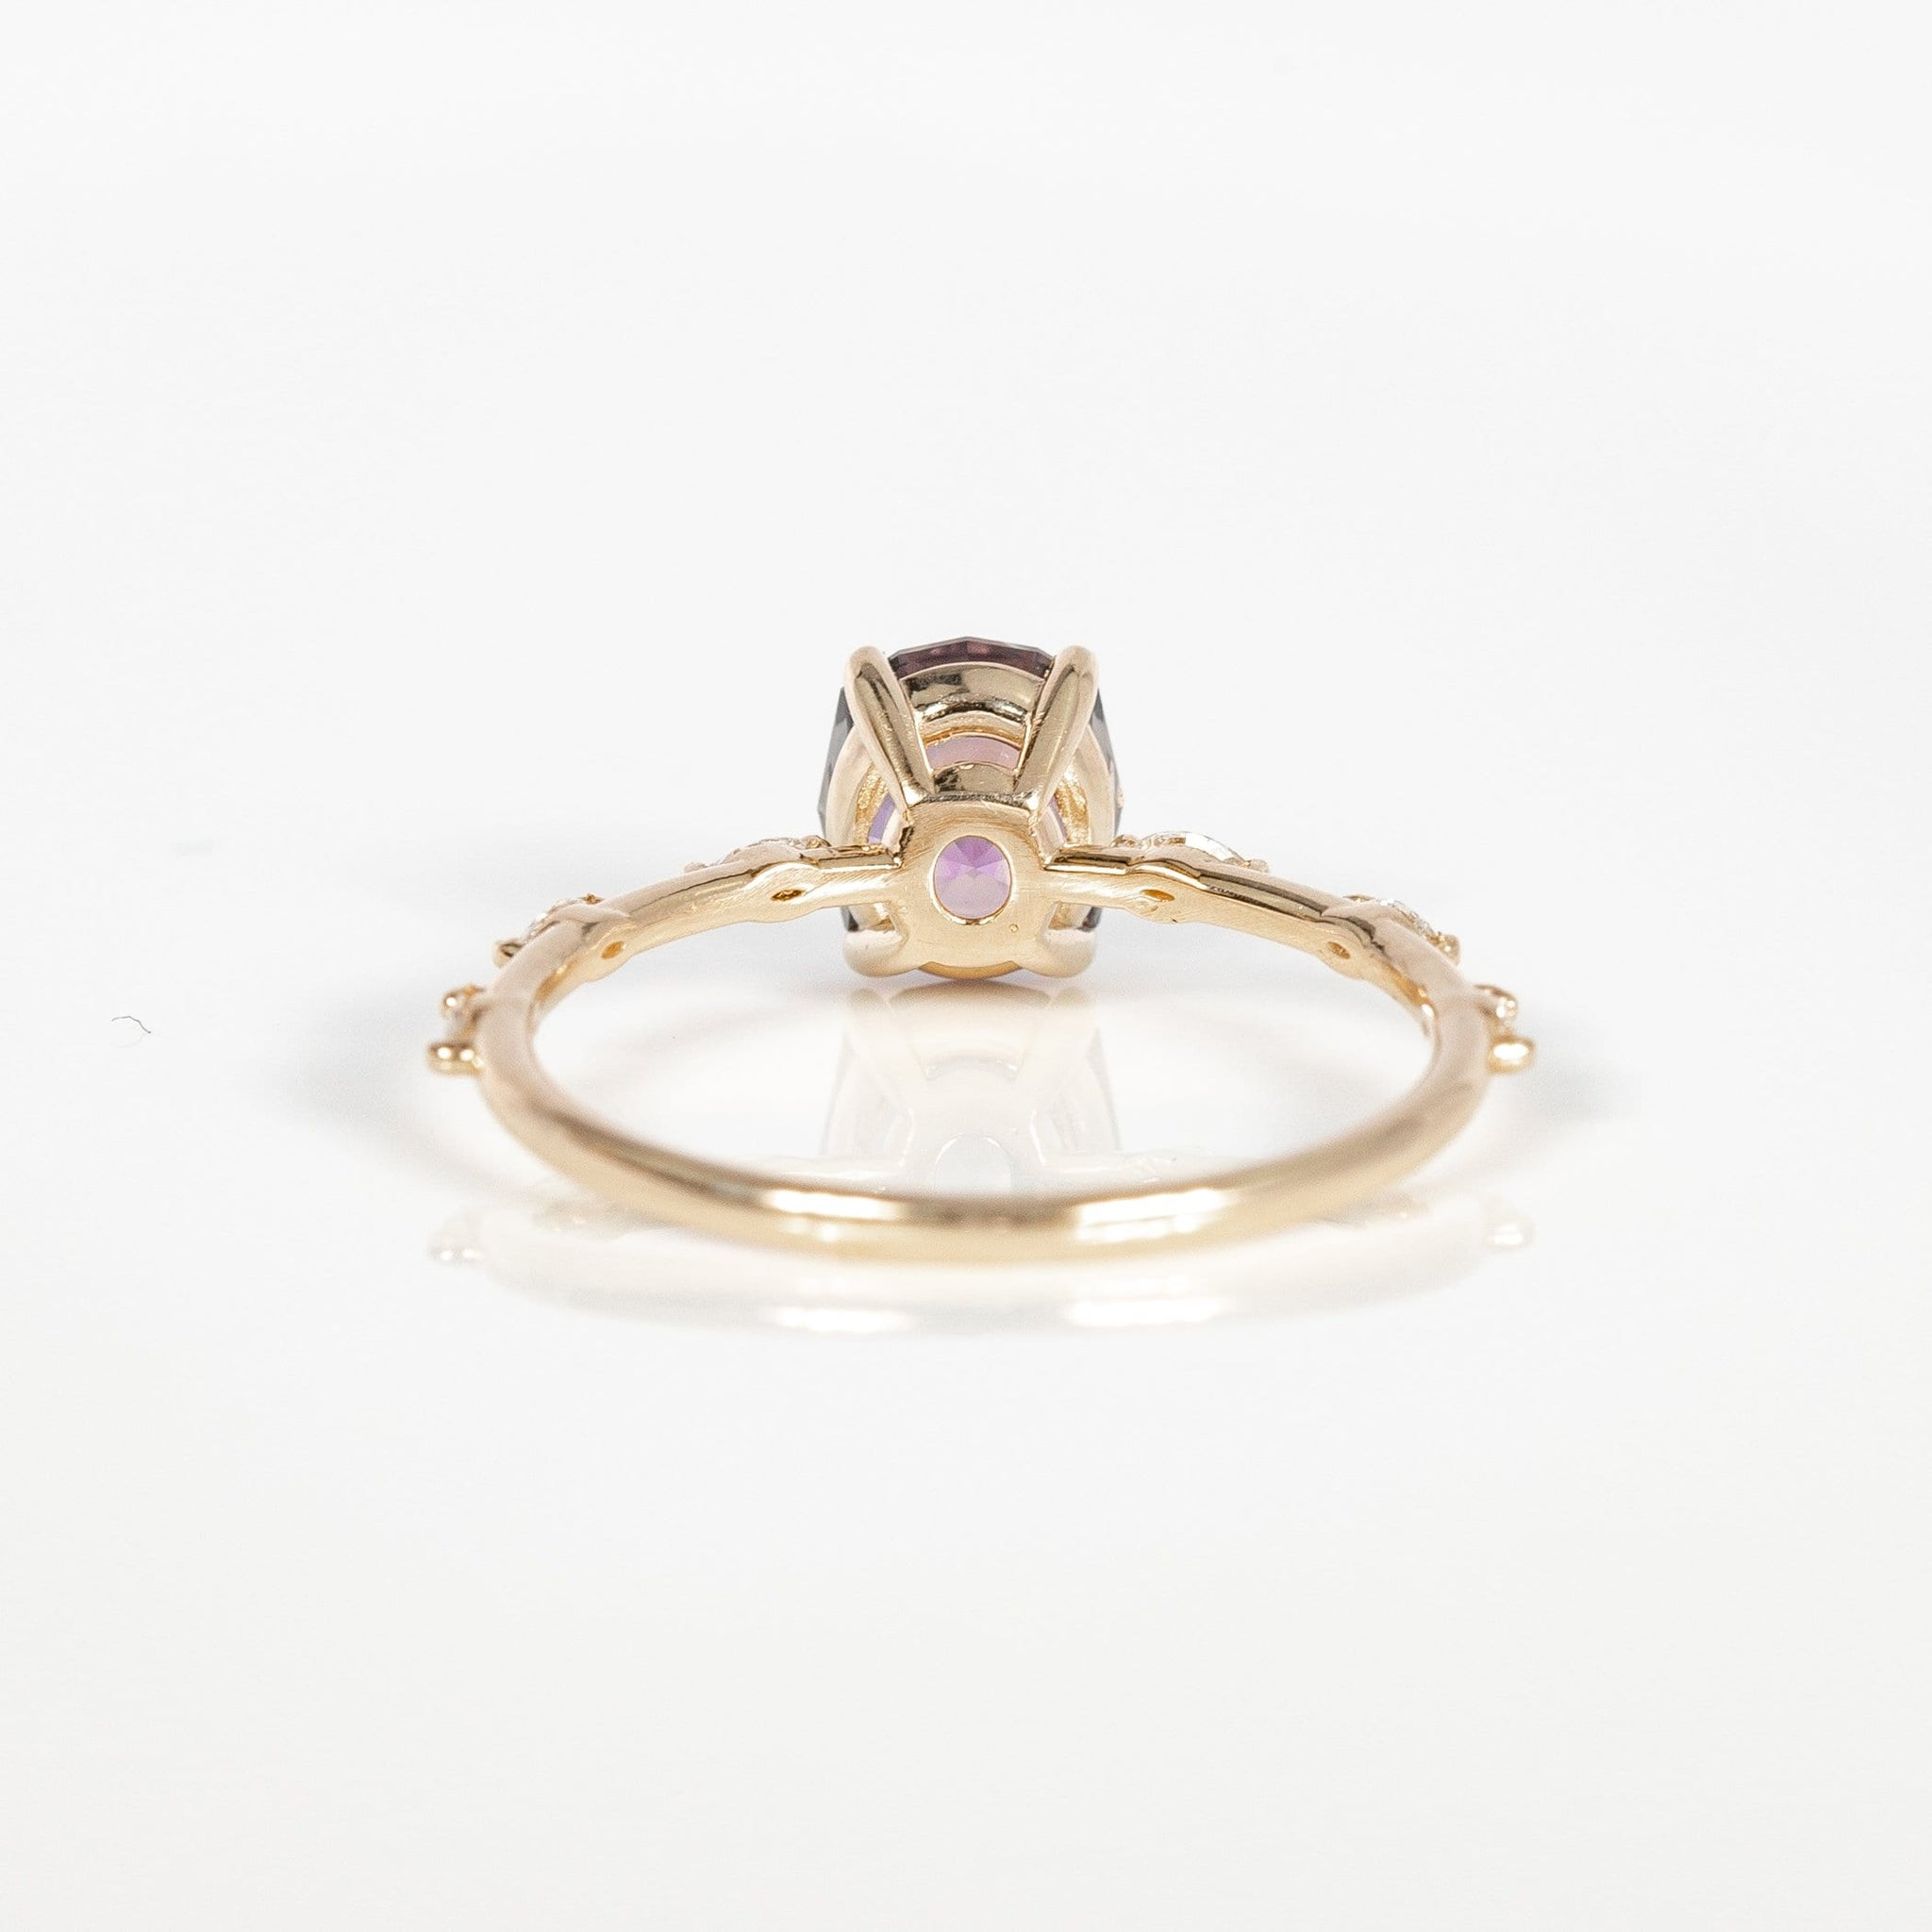 One of a Kind Delight Reverie Ring - 14k Yellow Gold, Pink Oval Sapphire, White Diamond